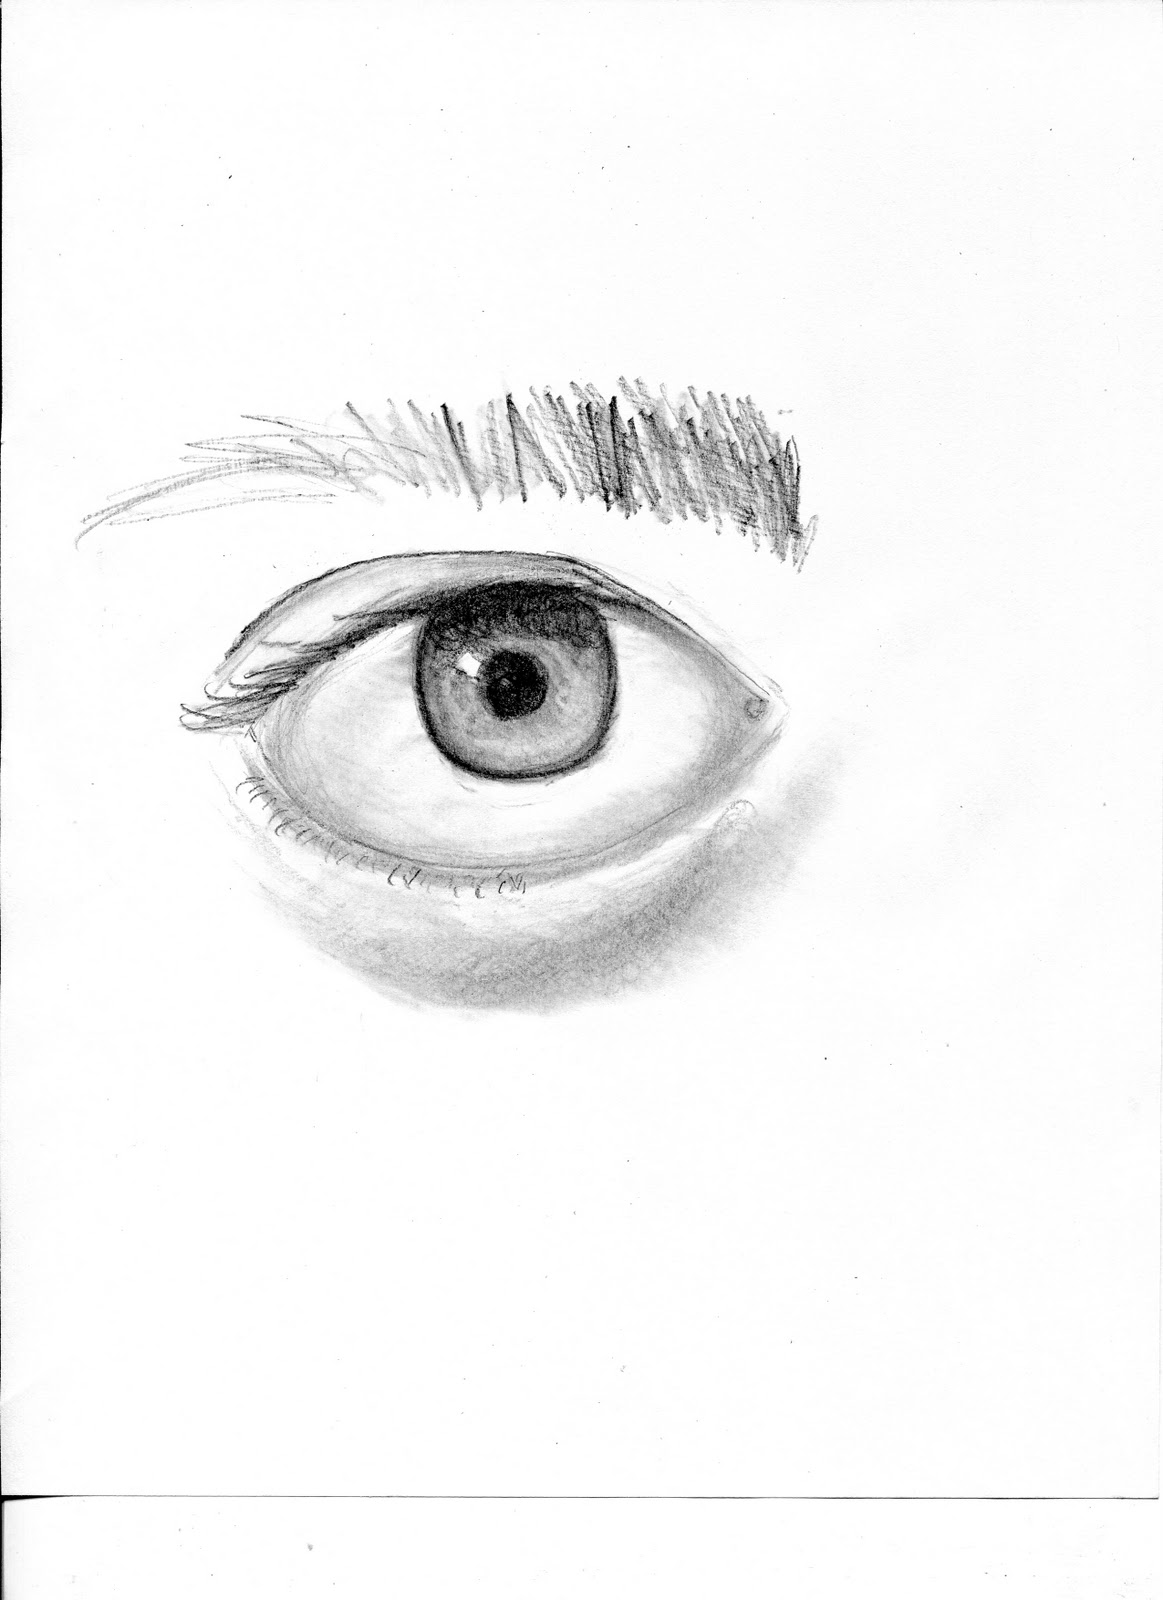 Art Of Drawing An Eye For Beginners